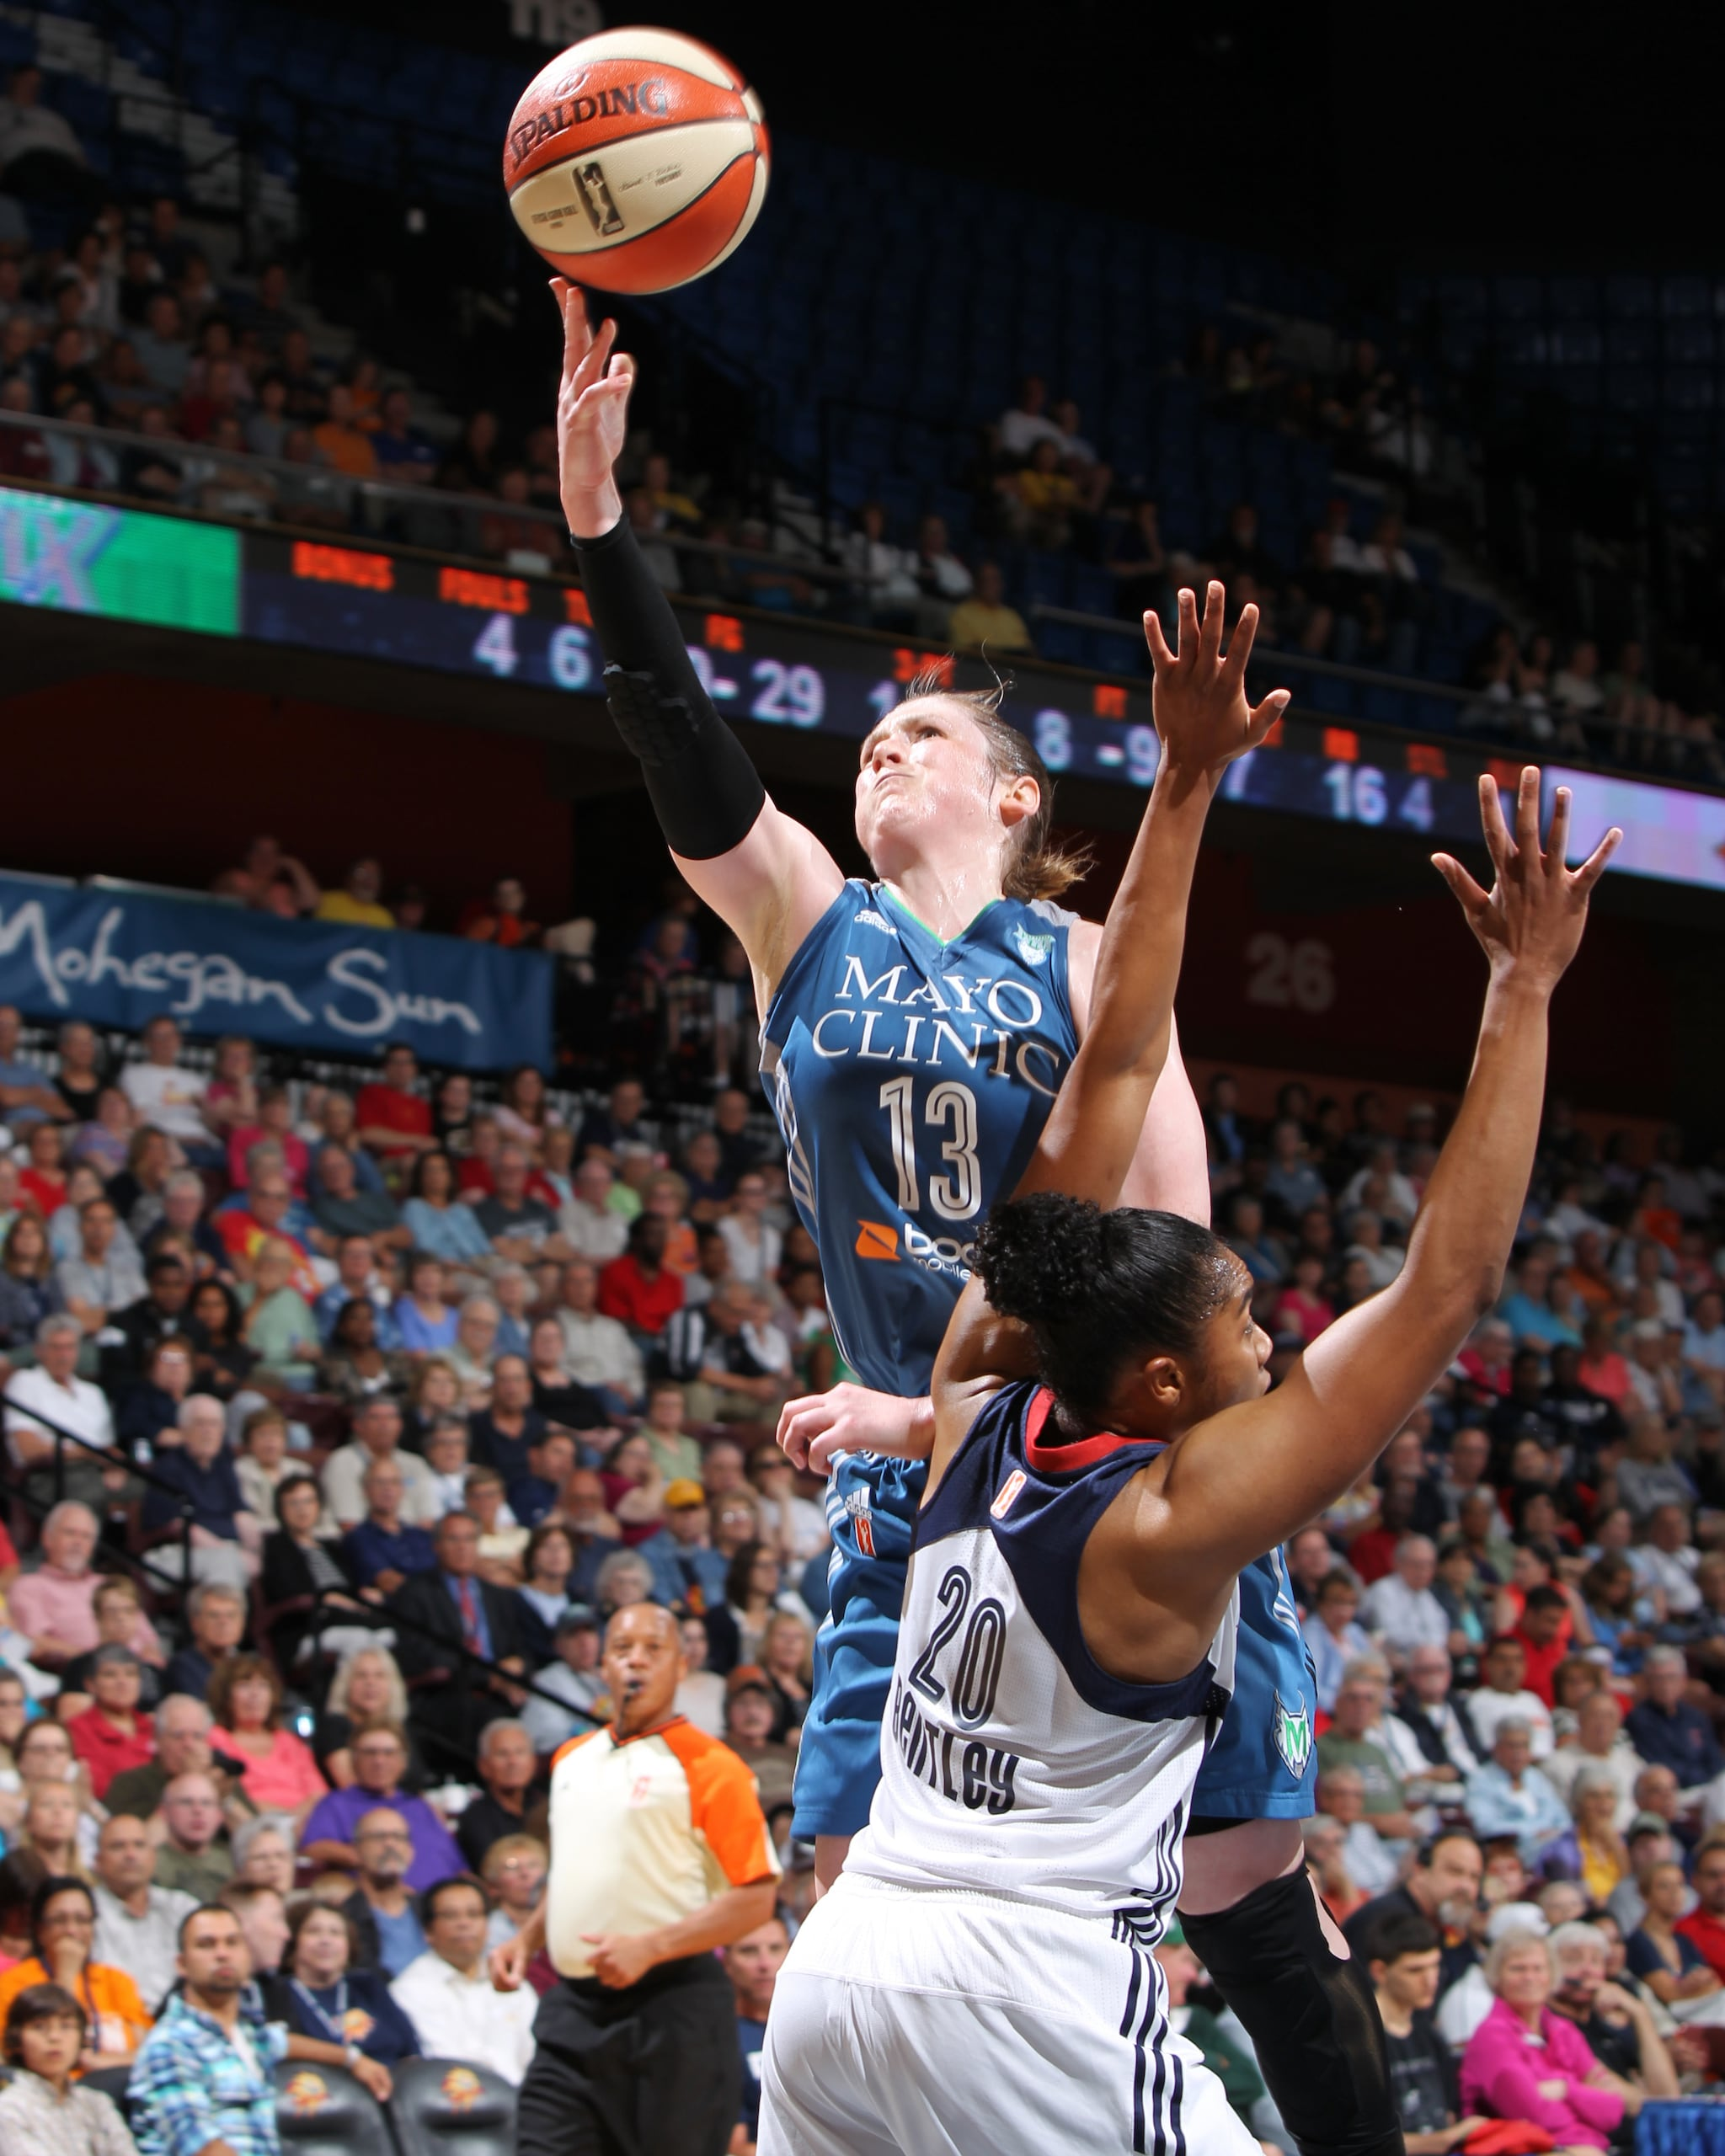 Lynx guard Lindsay Whalen steadied the team and commanded the offense, finishing with nine points, six rebounds and two steals.